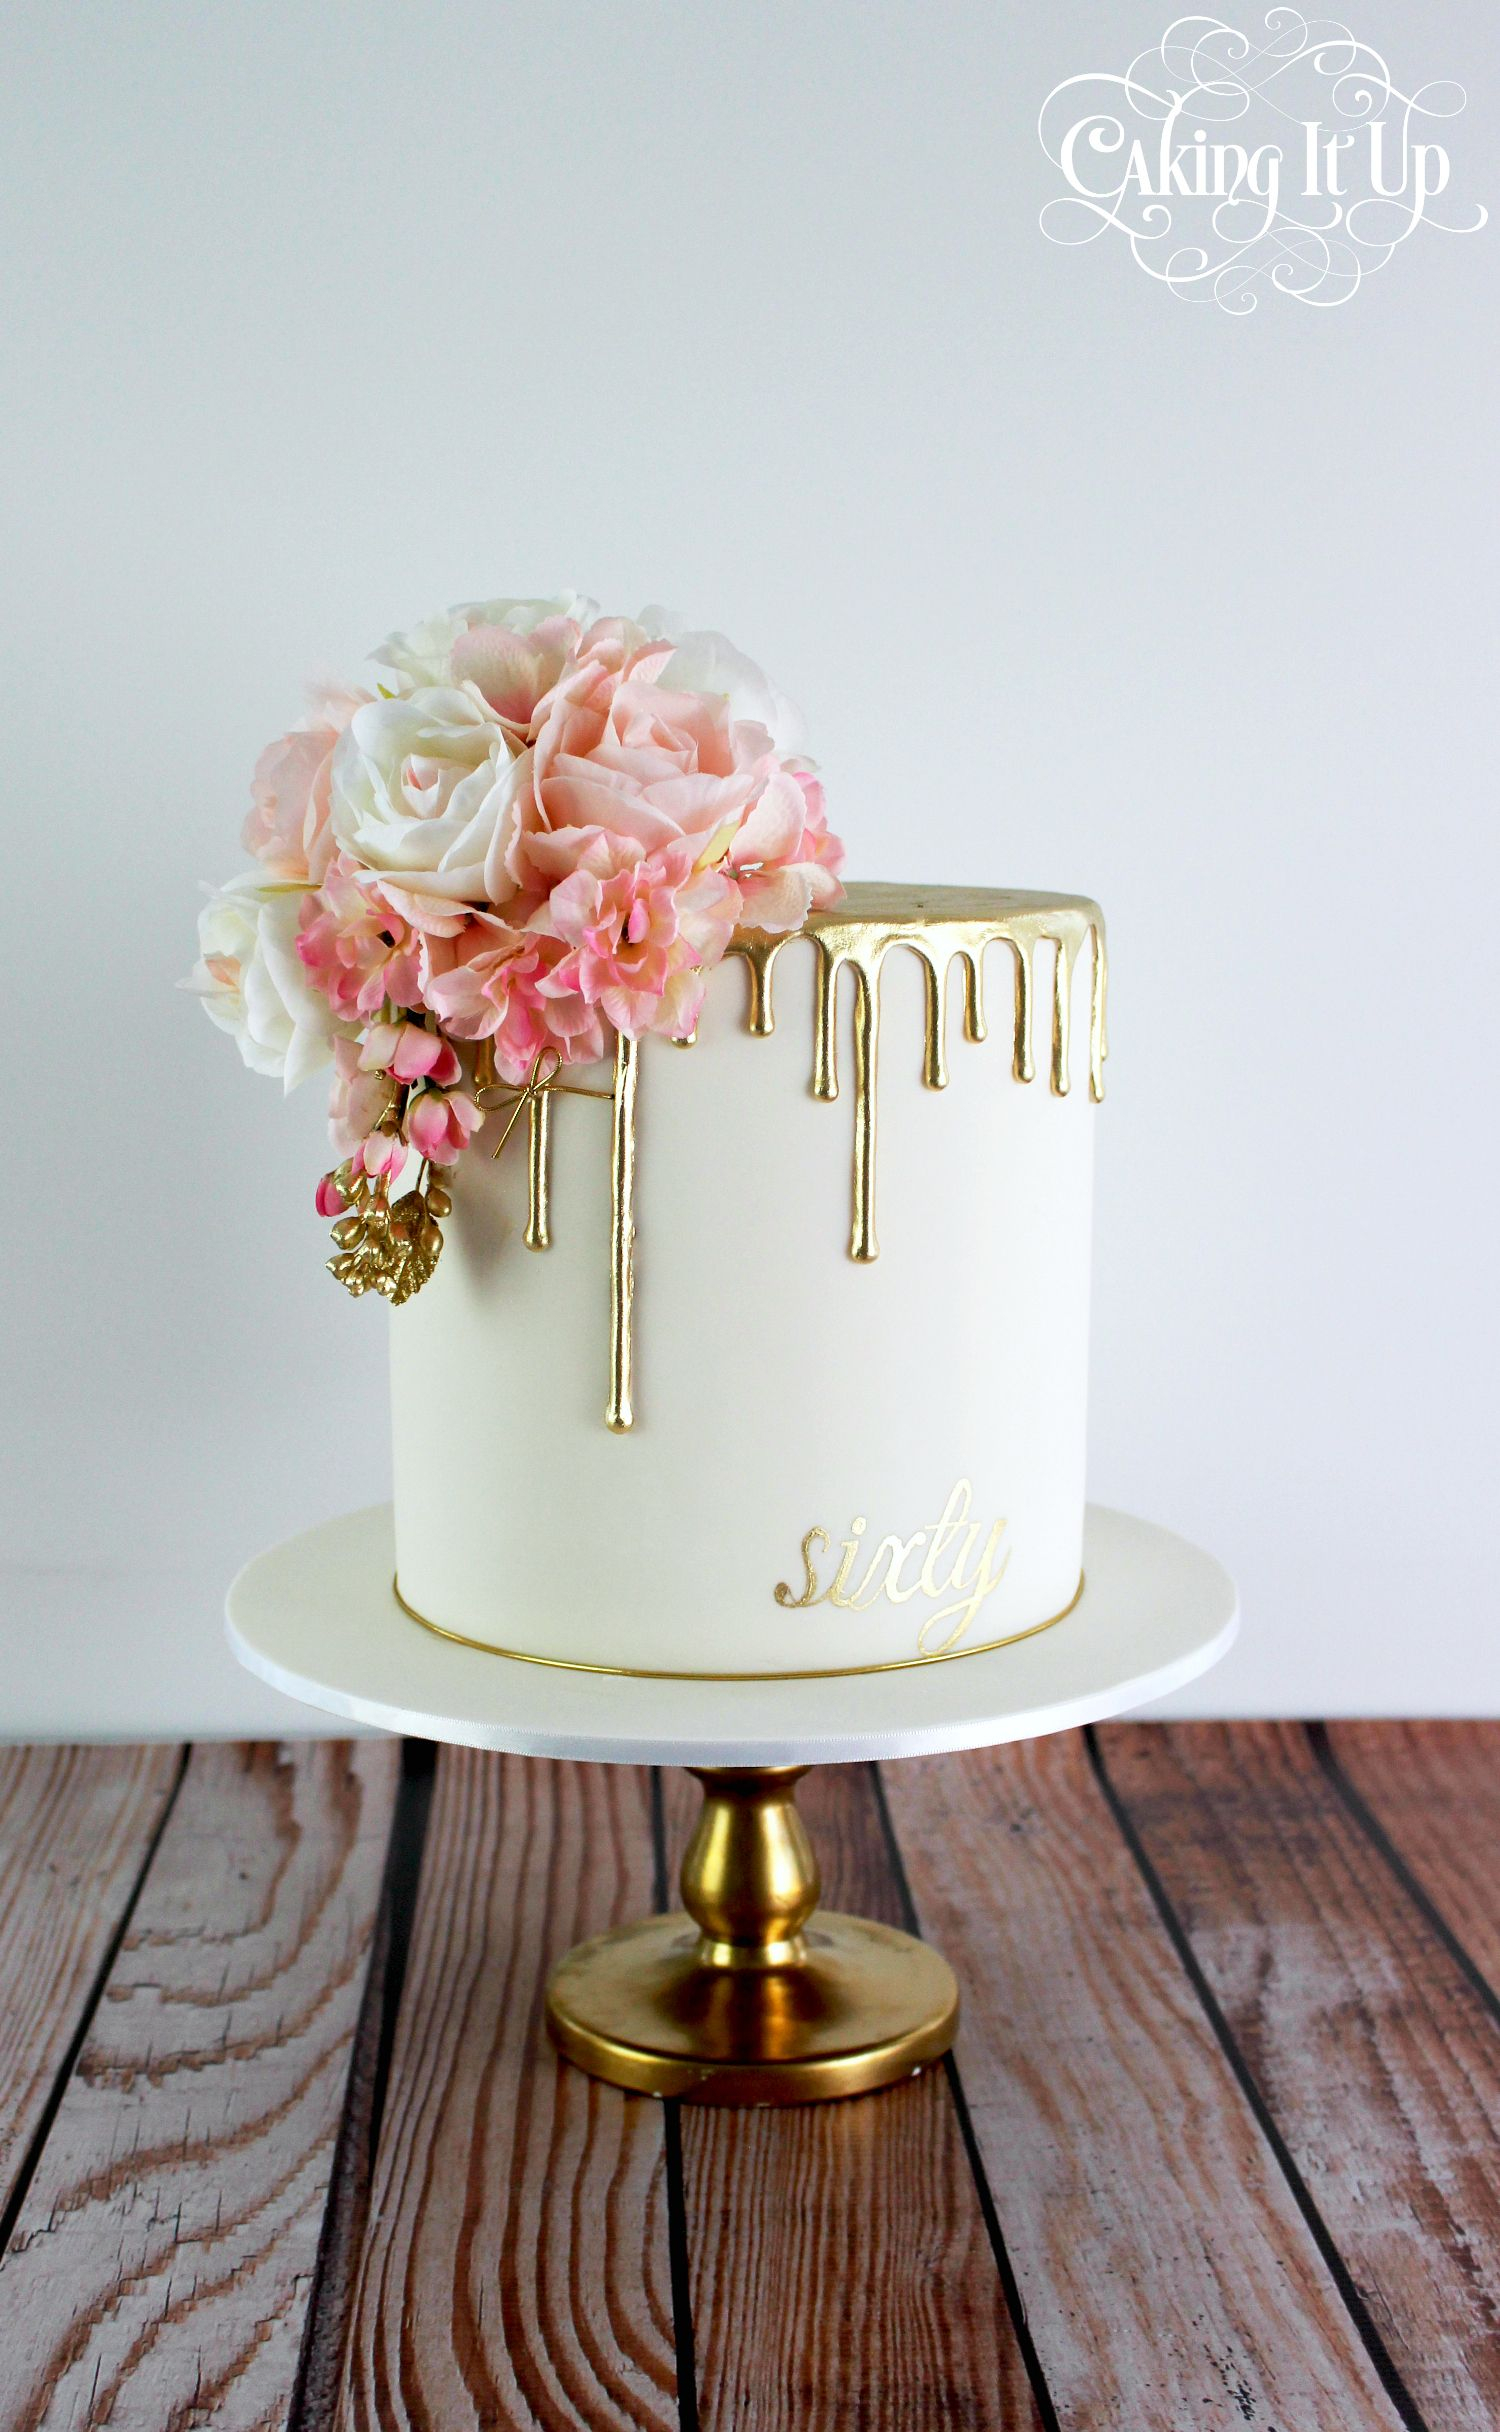 23+ Marvelous Photo of Classy Birthday Cakes